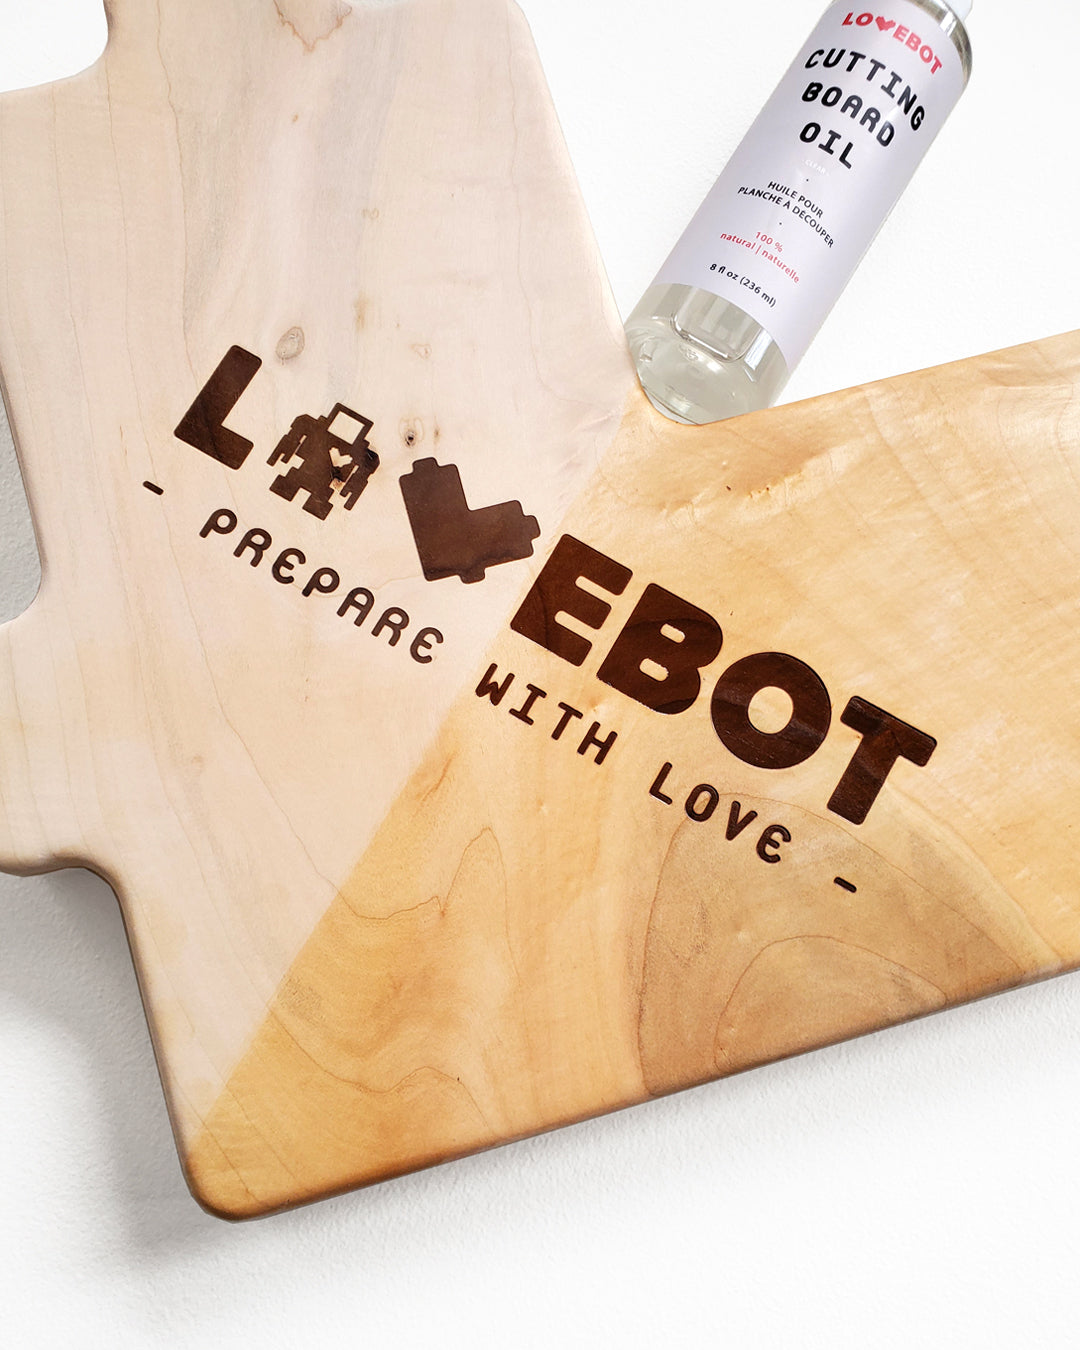 Lovebot S Cutting Board Oil Lovebot